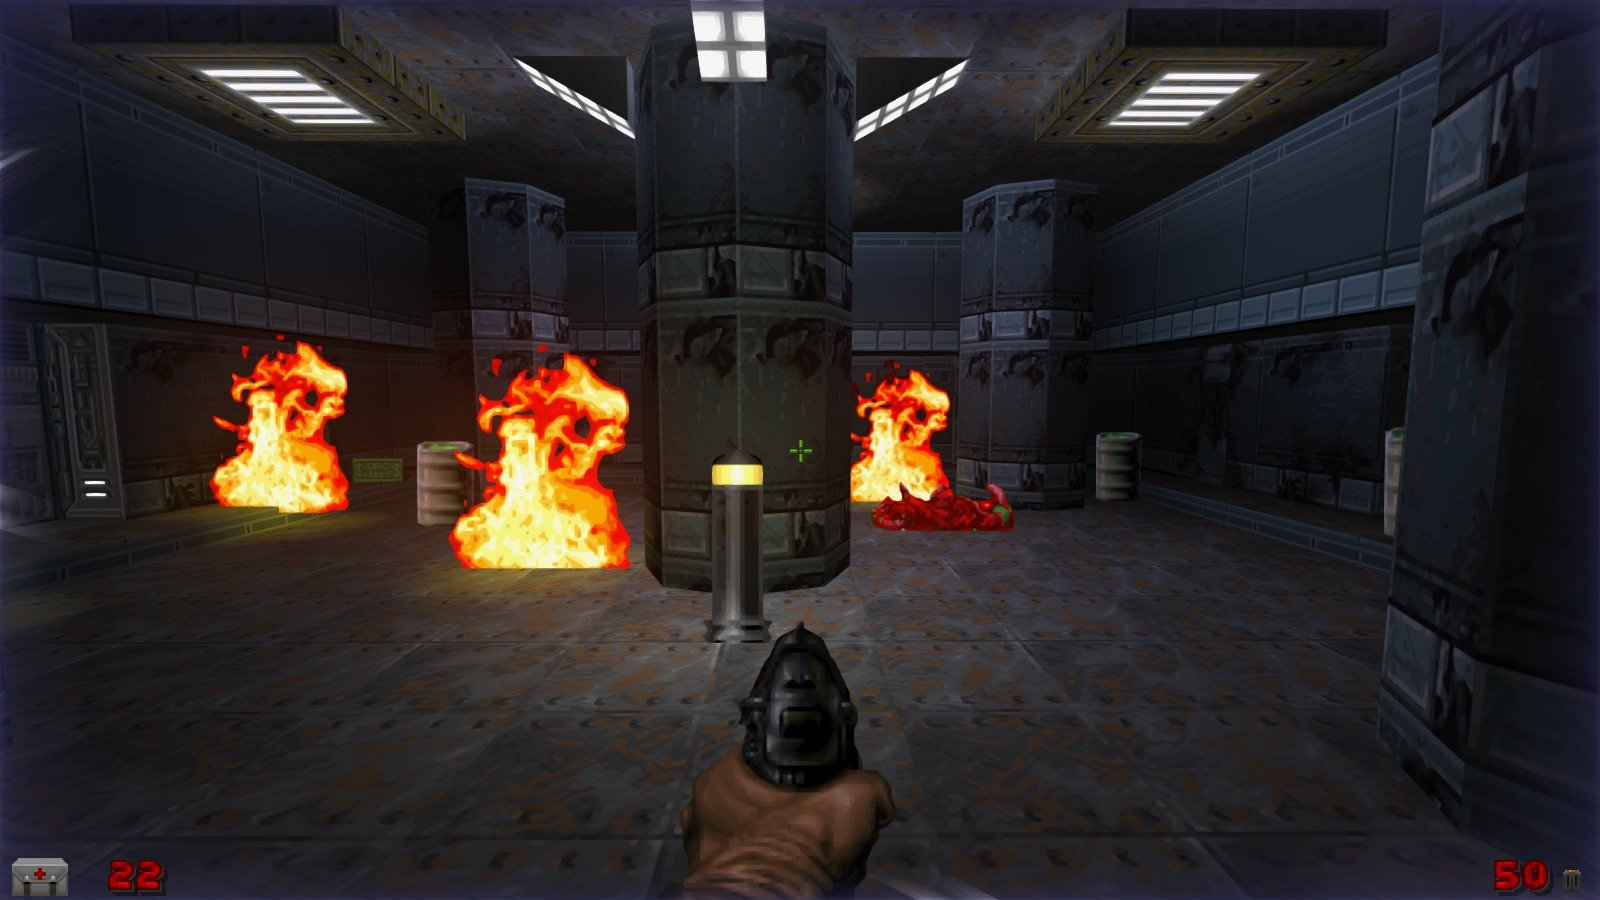 DRRP Doom RPG Remake Project SEC1 Sector 1 Fire Barrel Parking Screenshot